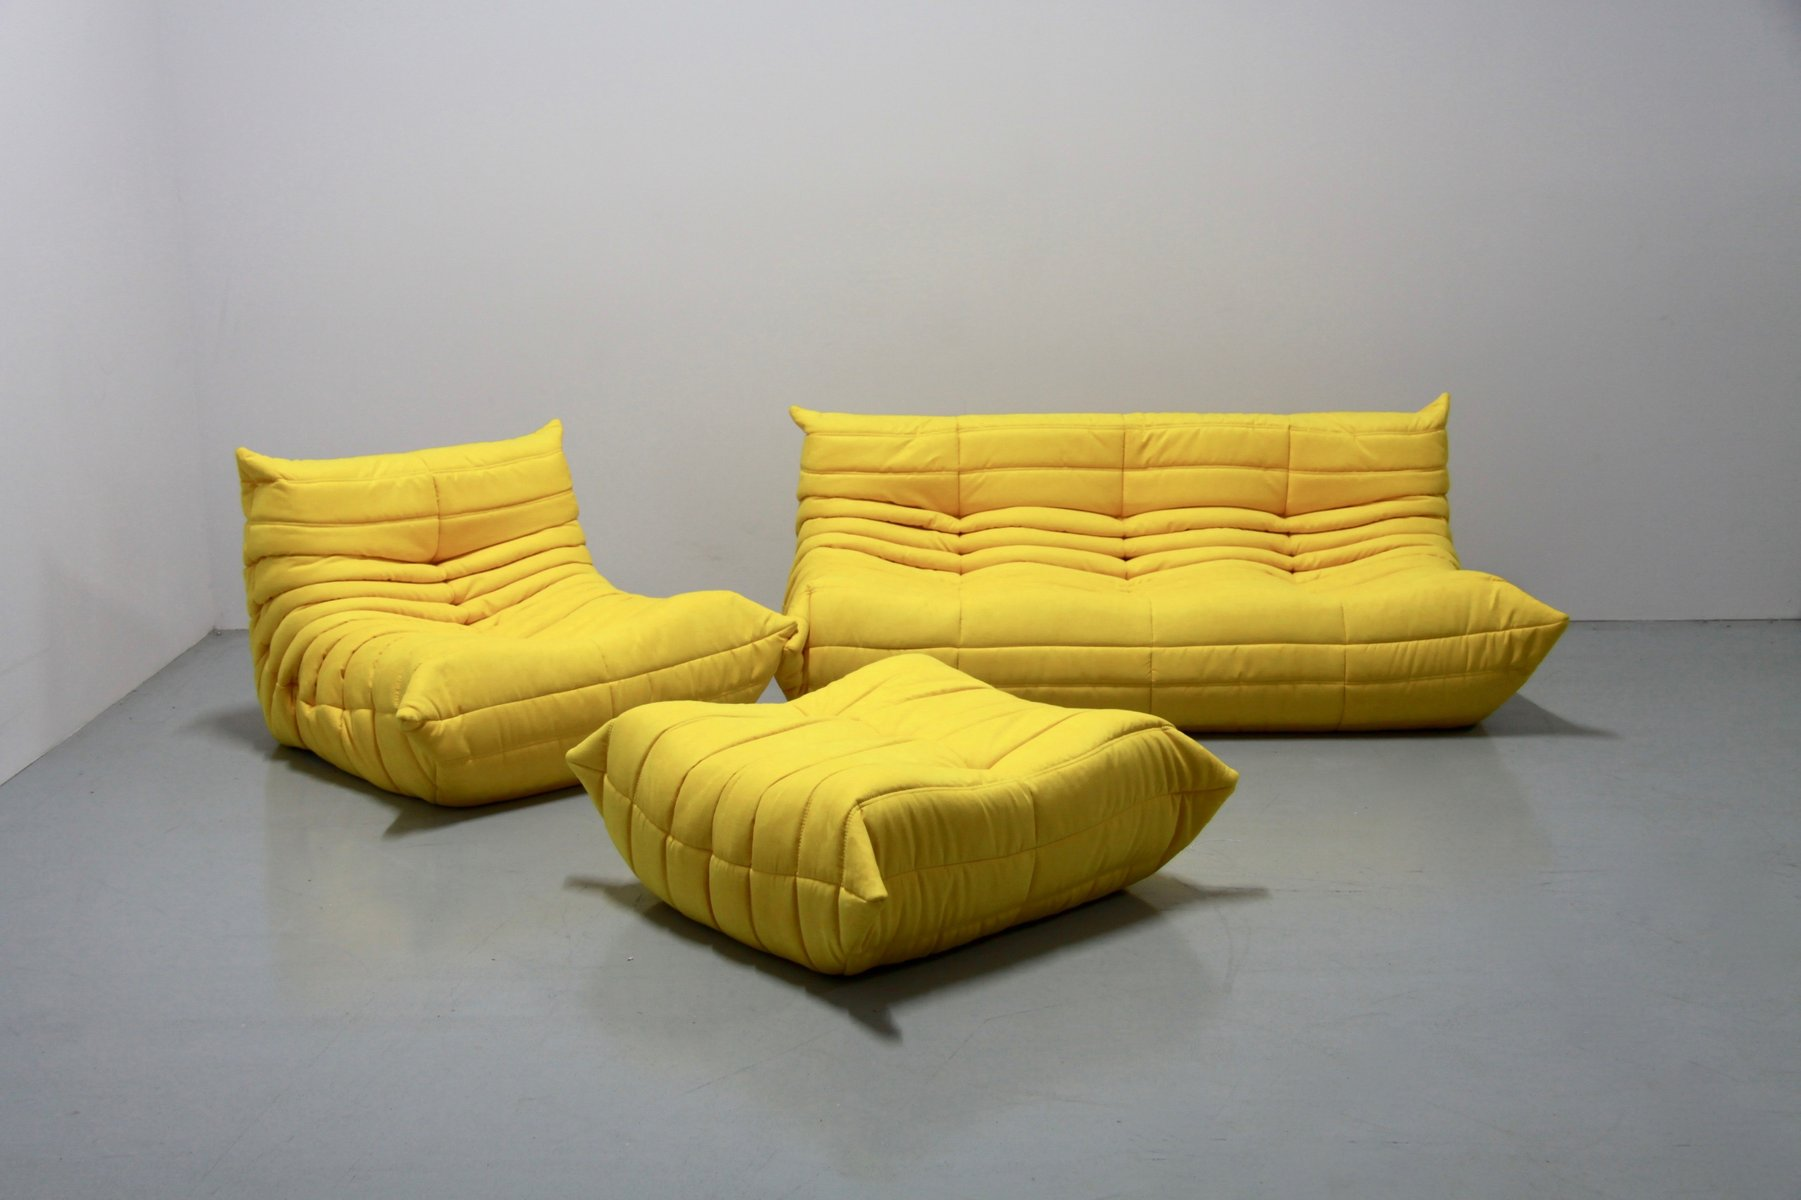 set de canap togo vintage en microfibres jaunes par michel ducaroy pour ligne roset 1970s en. Black Bedroom Furniture Sets. Home Design Ideas